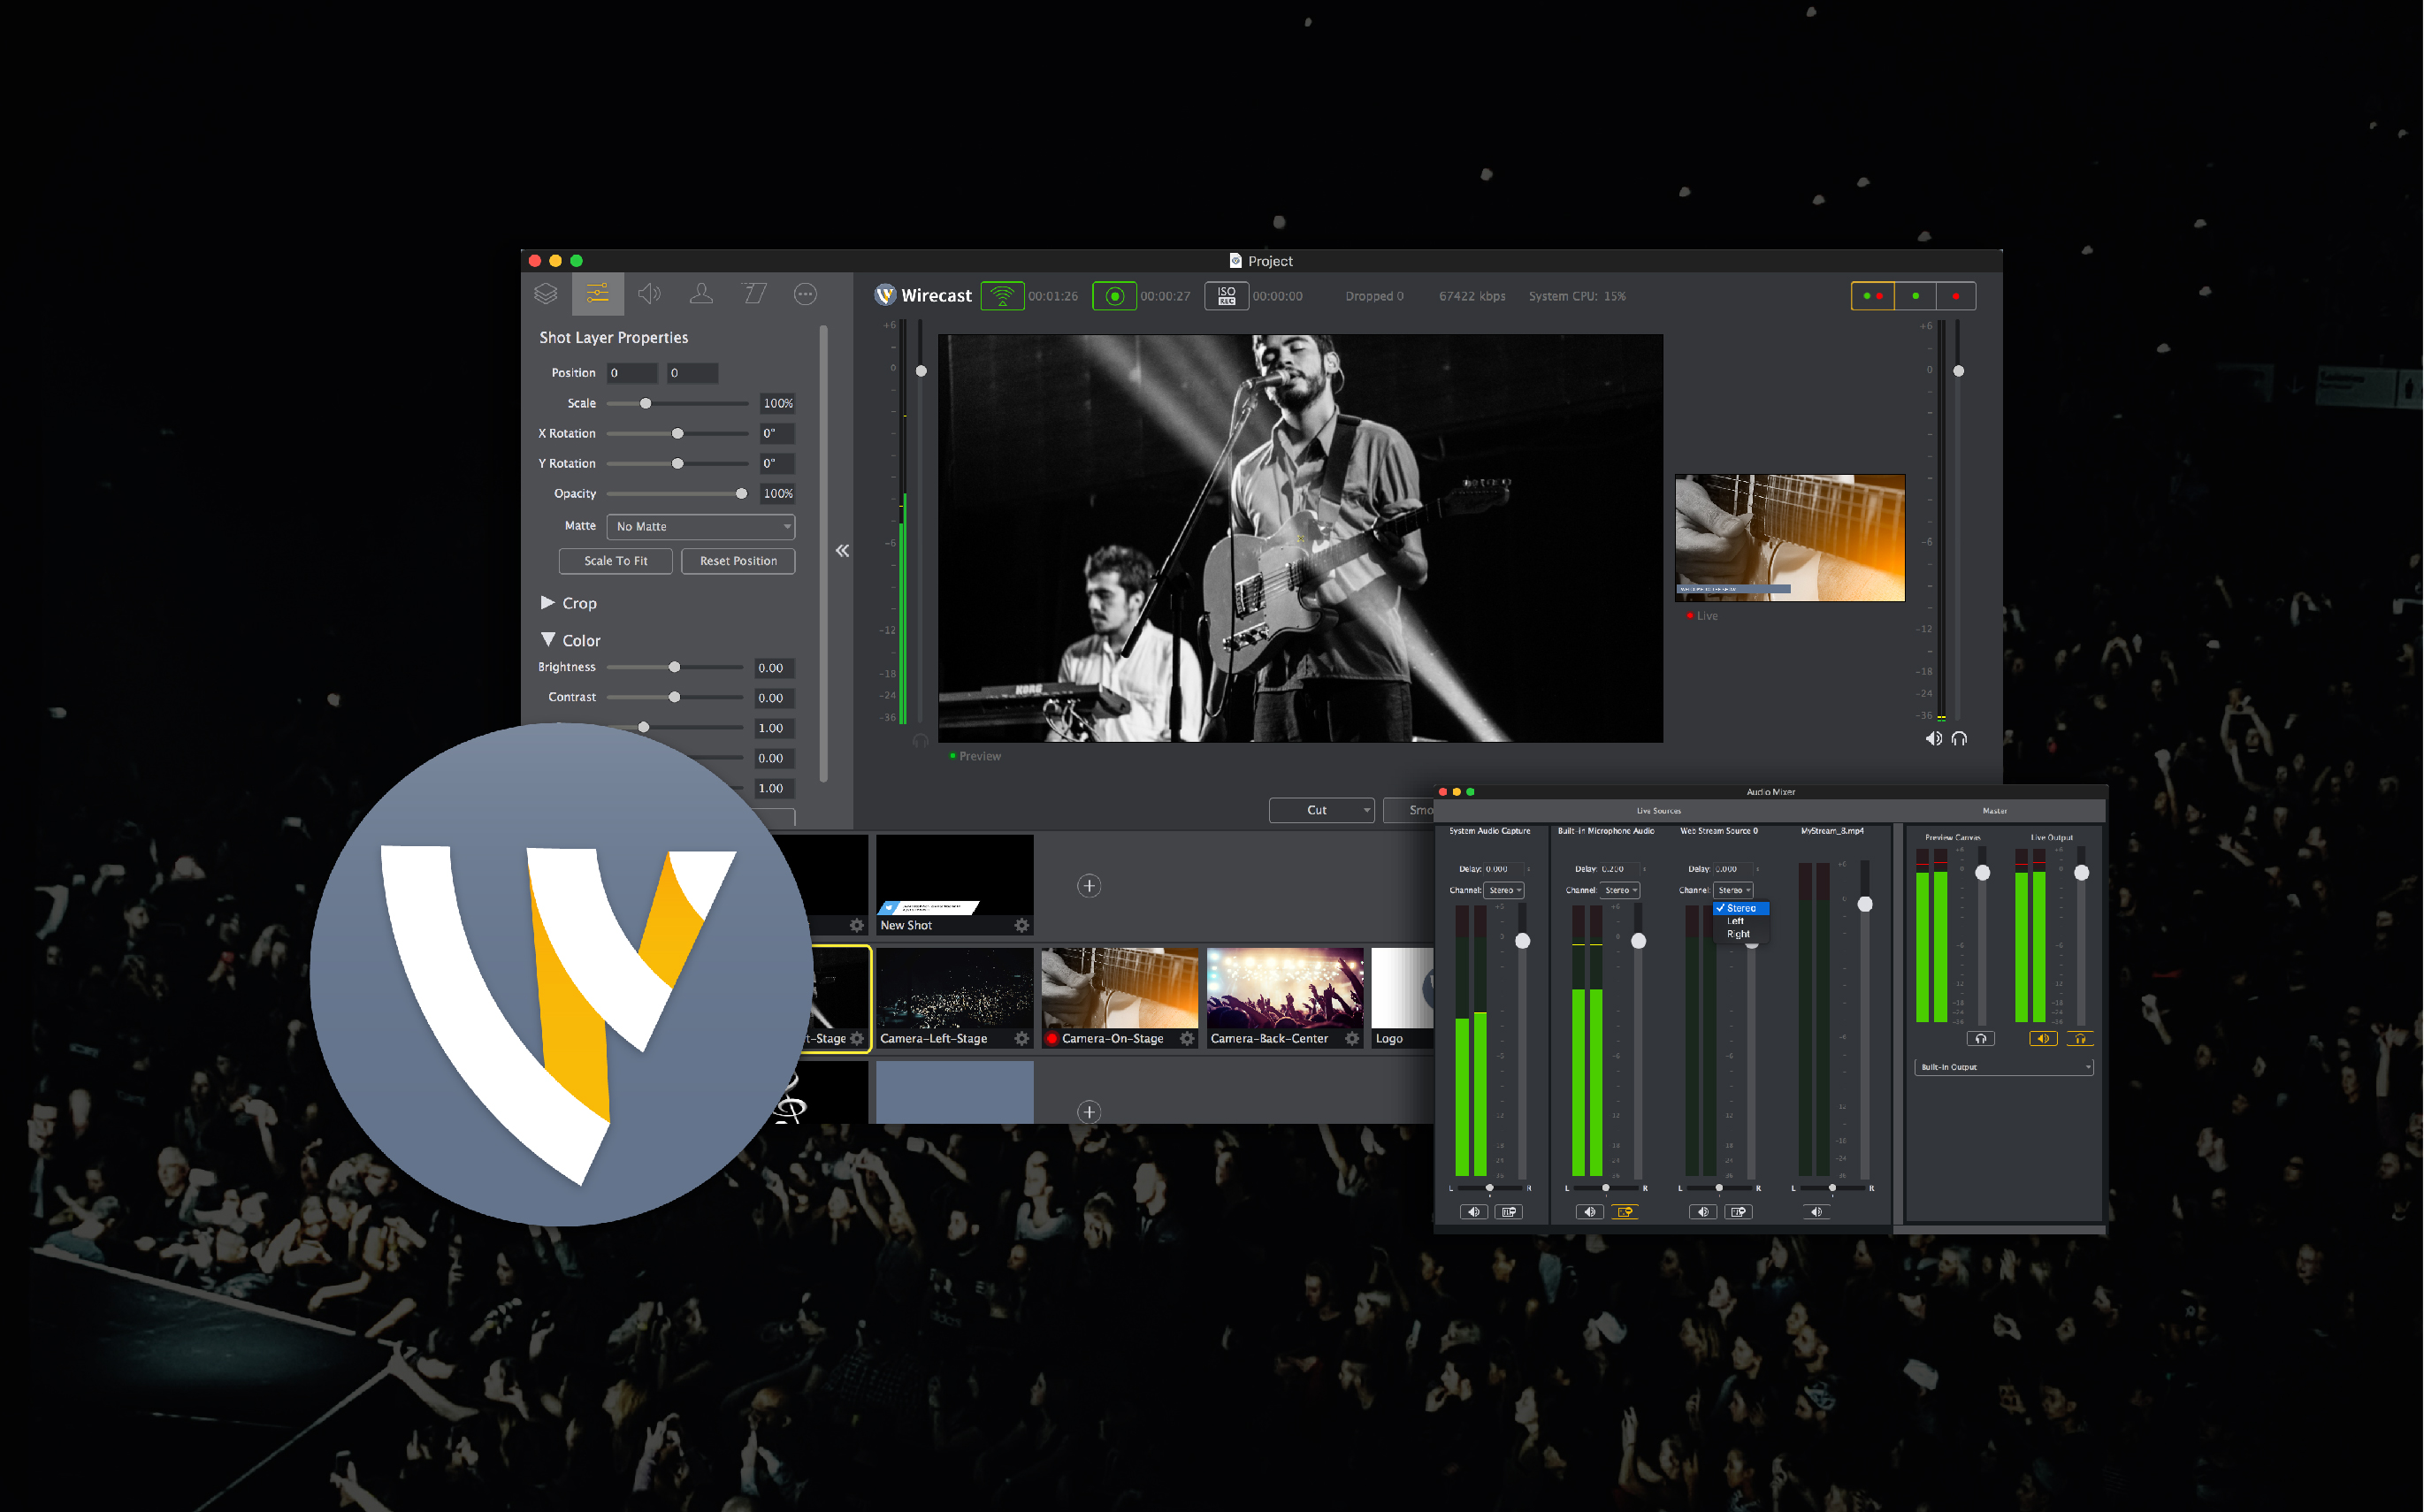 wirecast free download for windows 7